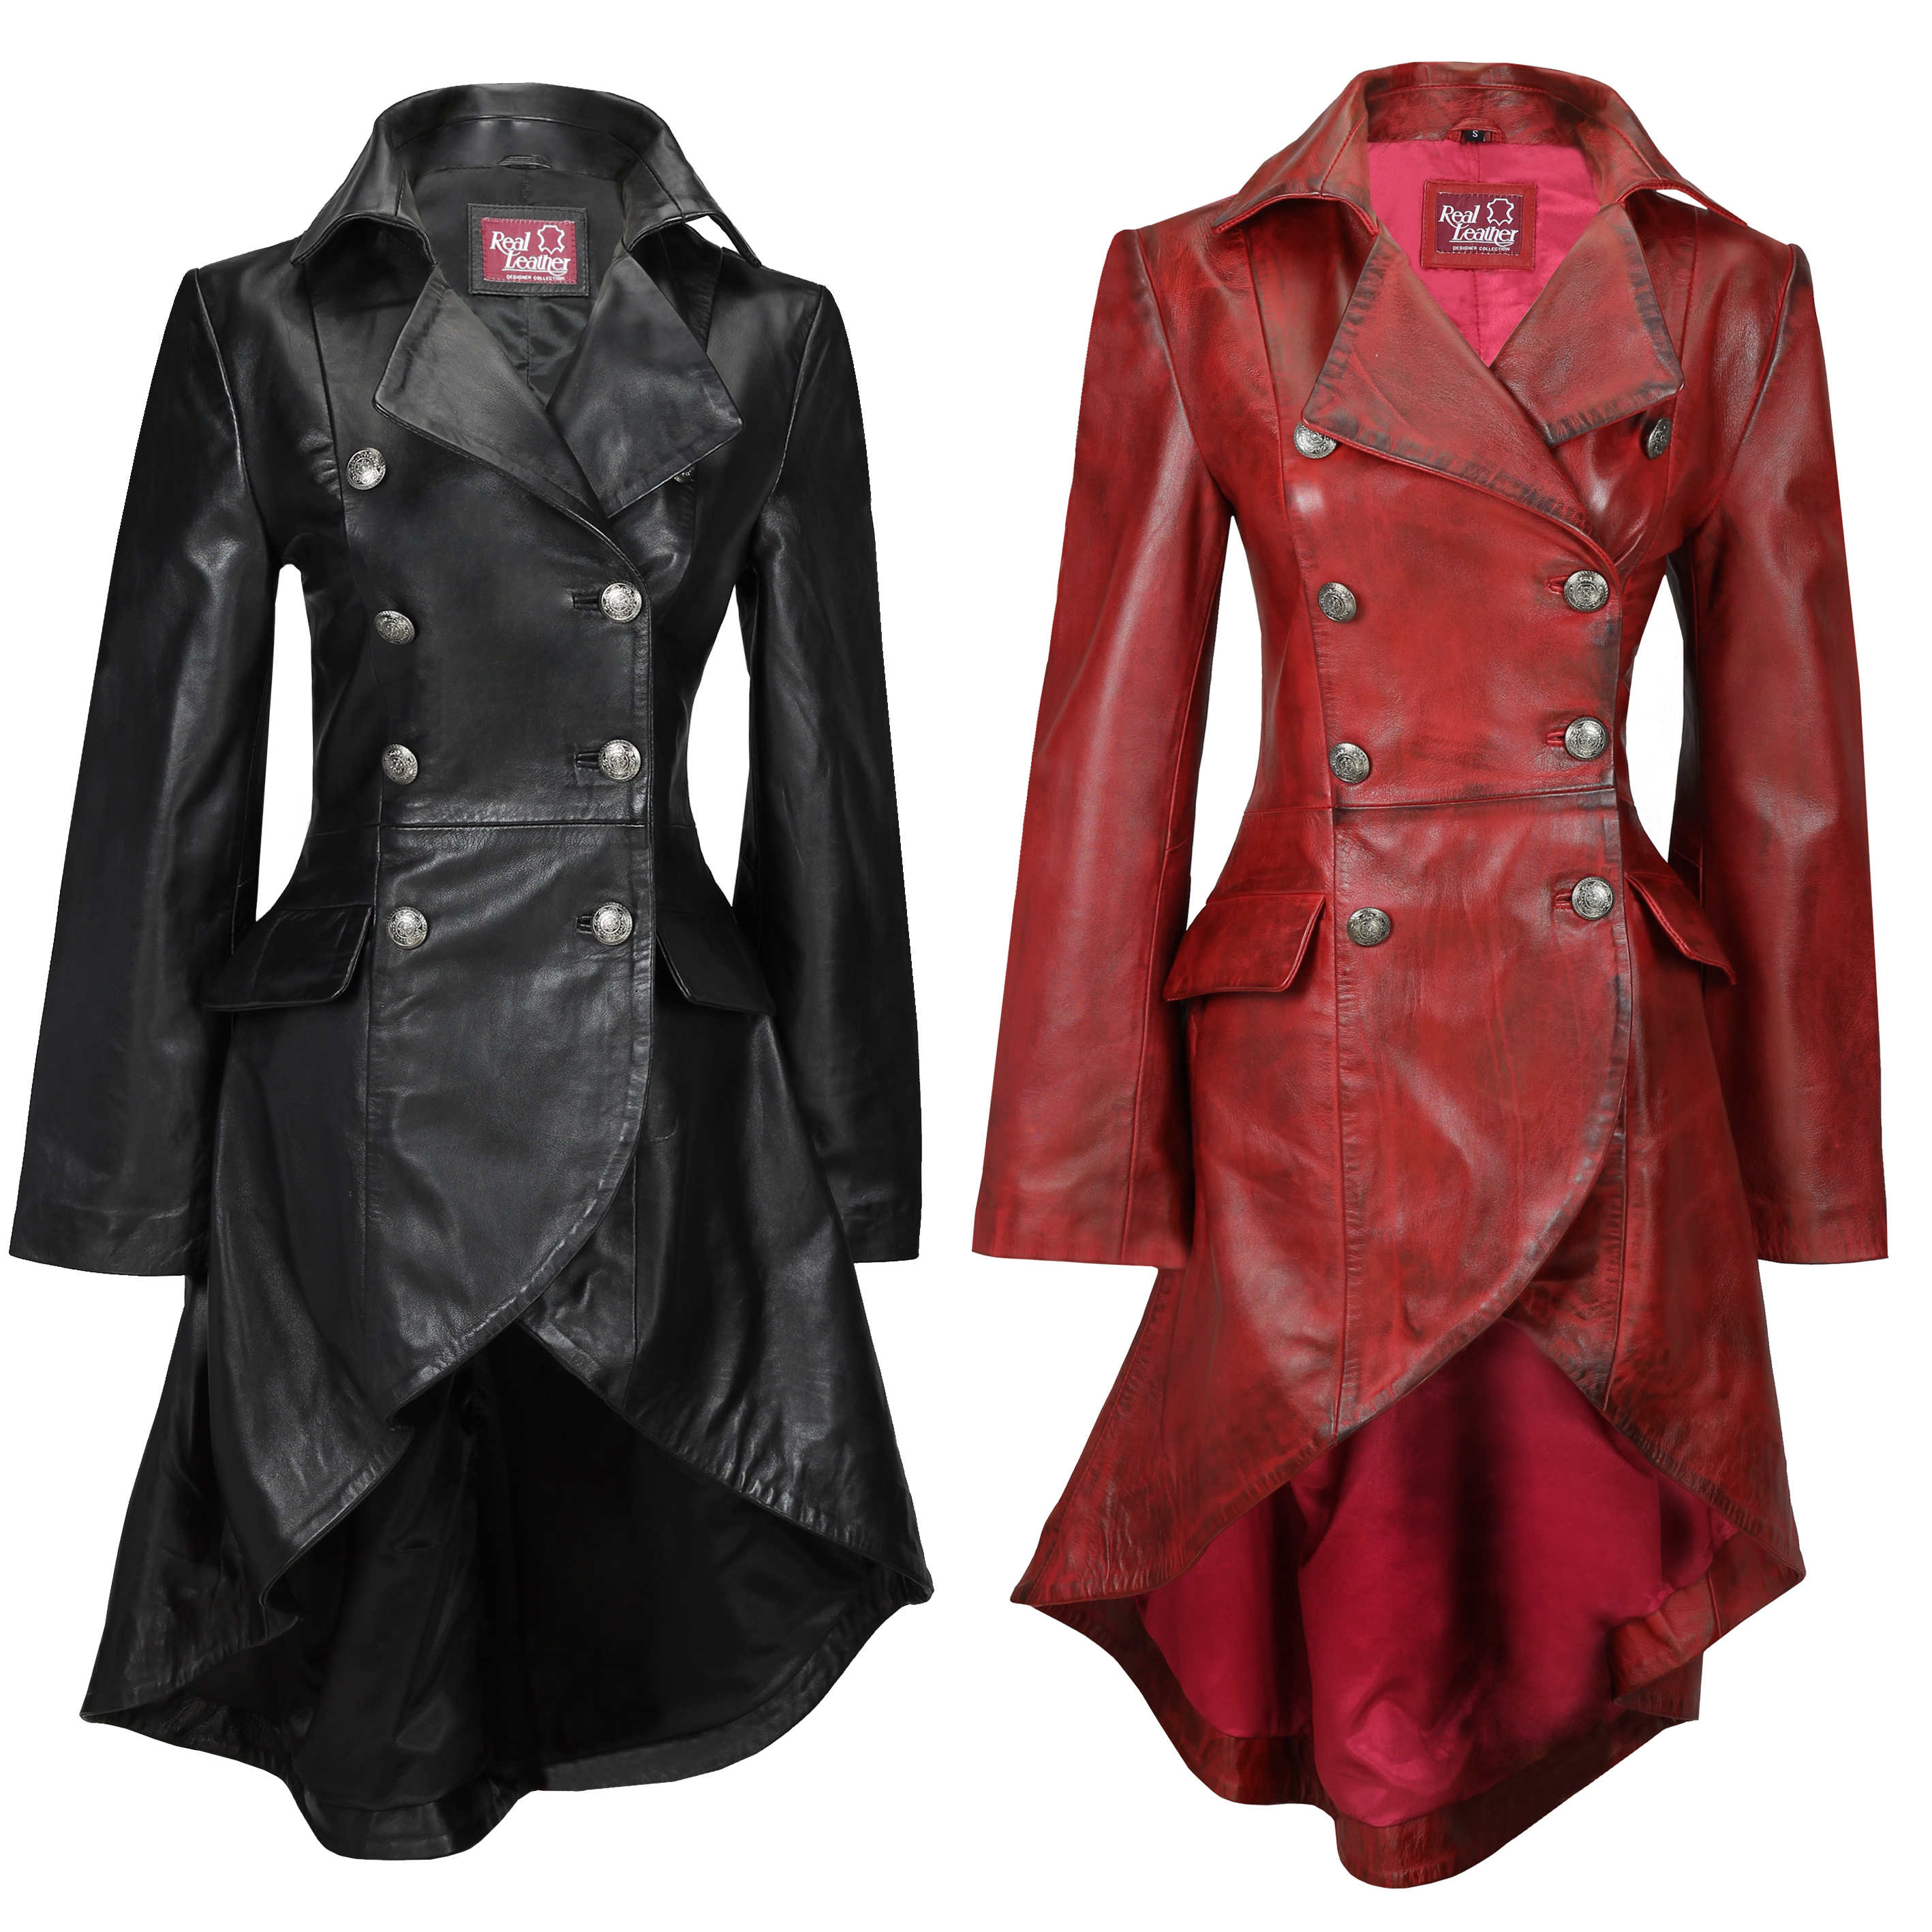 fde978cdf Details about Ladies Real Leather Black Gothic Jacket Fitted Victorian  Style Lace Back Coat